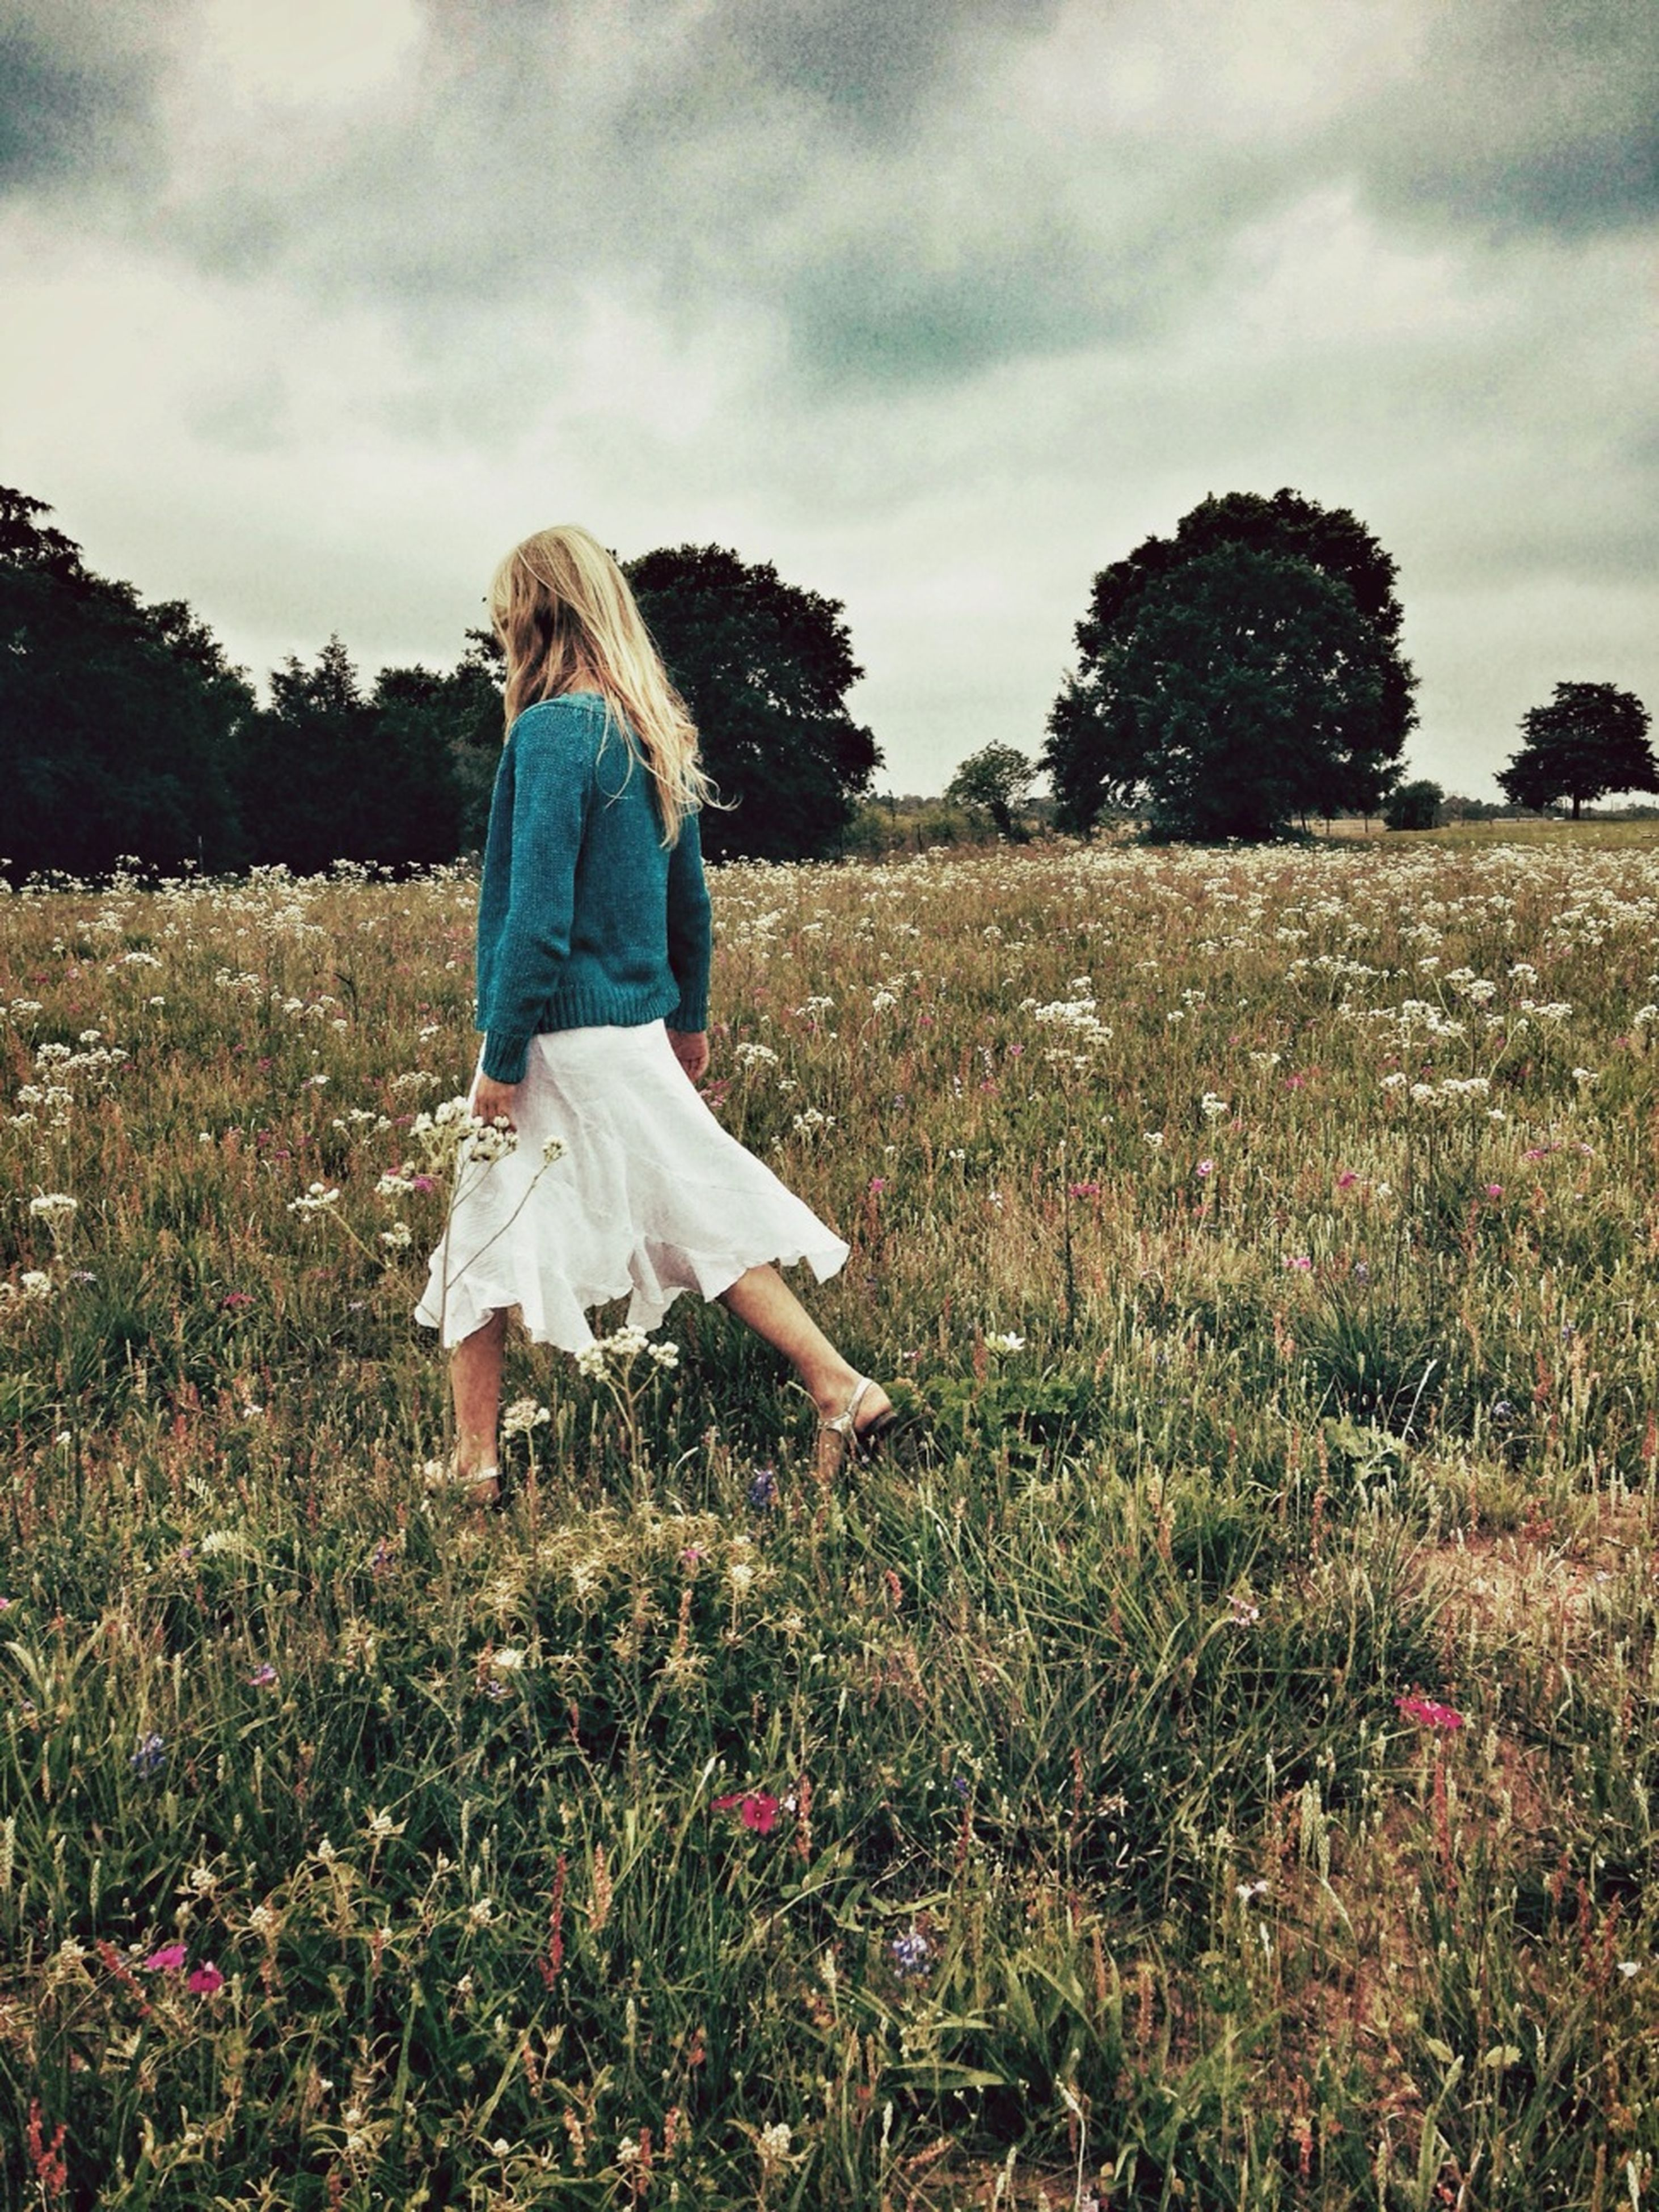 field, sky, lifestyles, leisure activity, landscape, grass, full length, cloud - sky, casual clothing, growth, rear view, tranquil scene, nature, tranquility, standing, beauty in nature, plant, tree